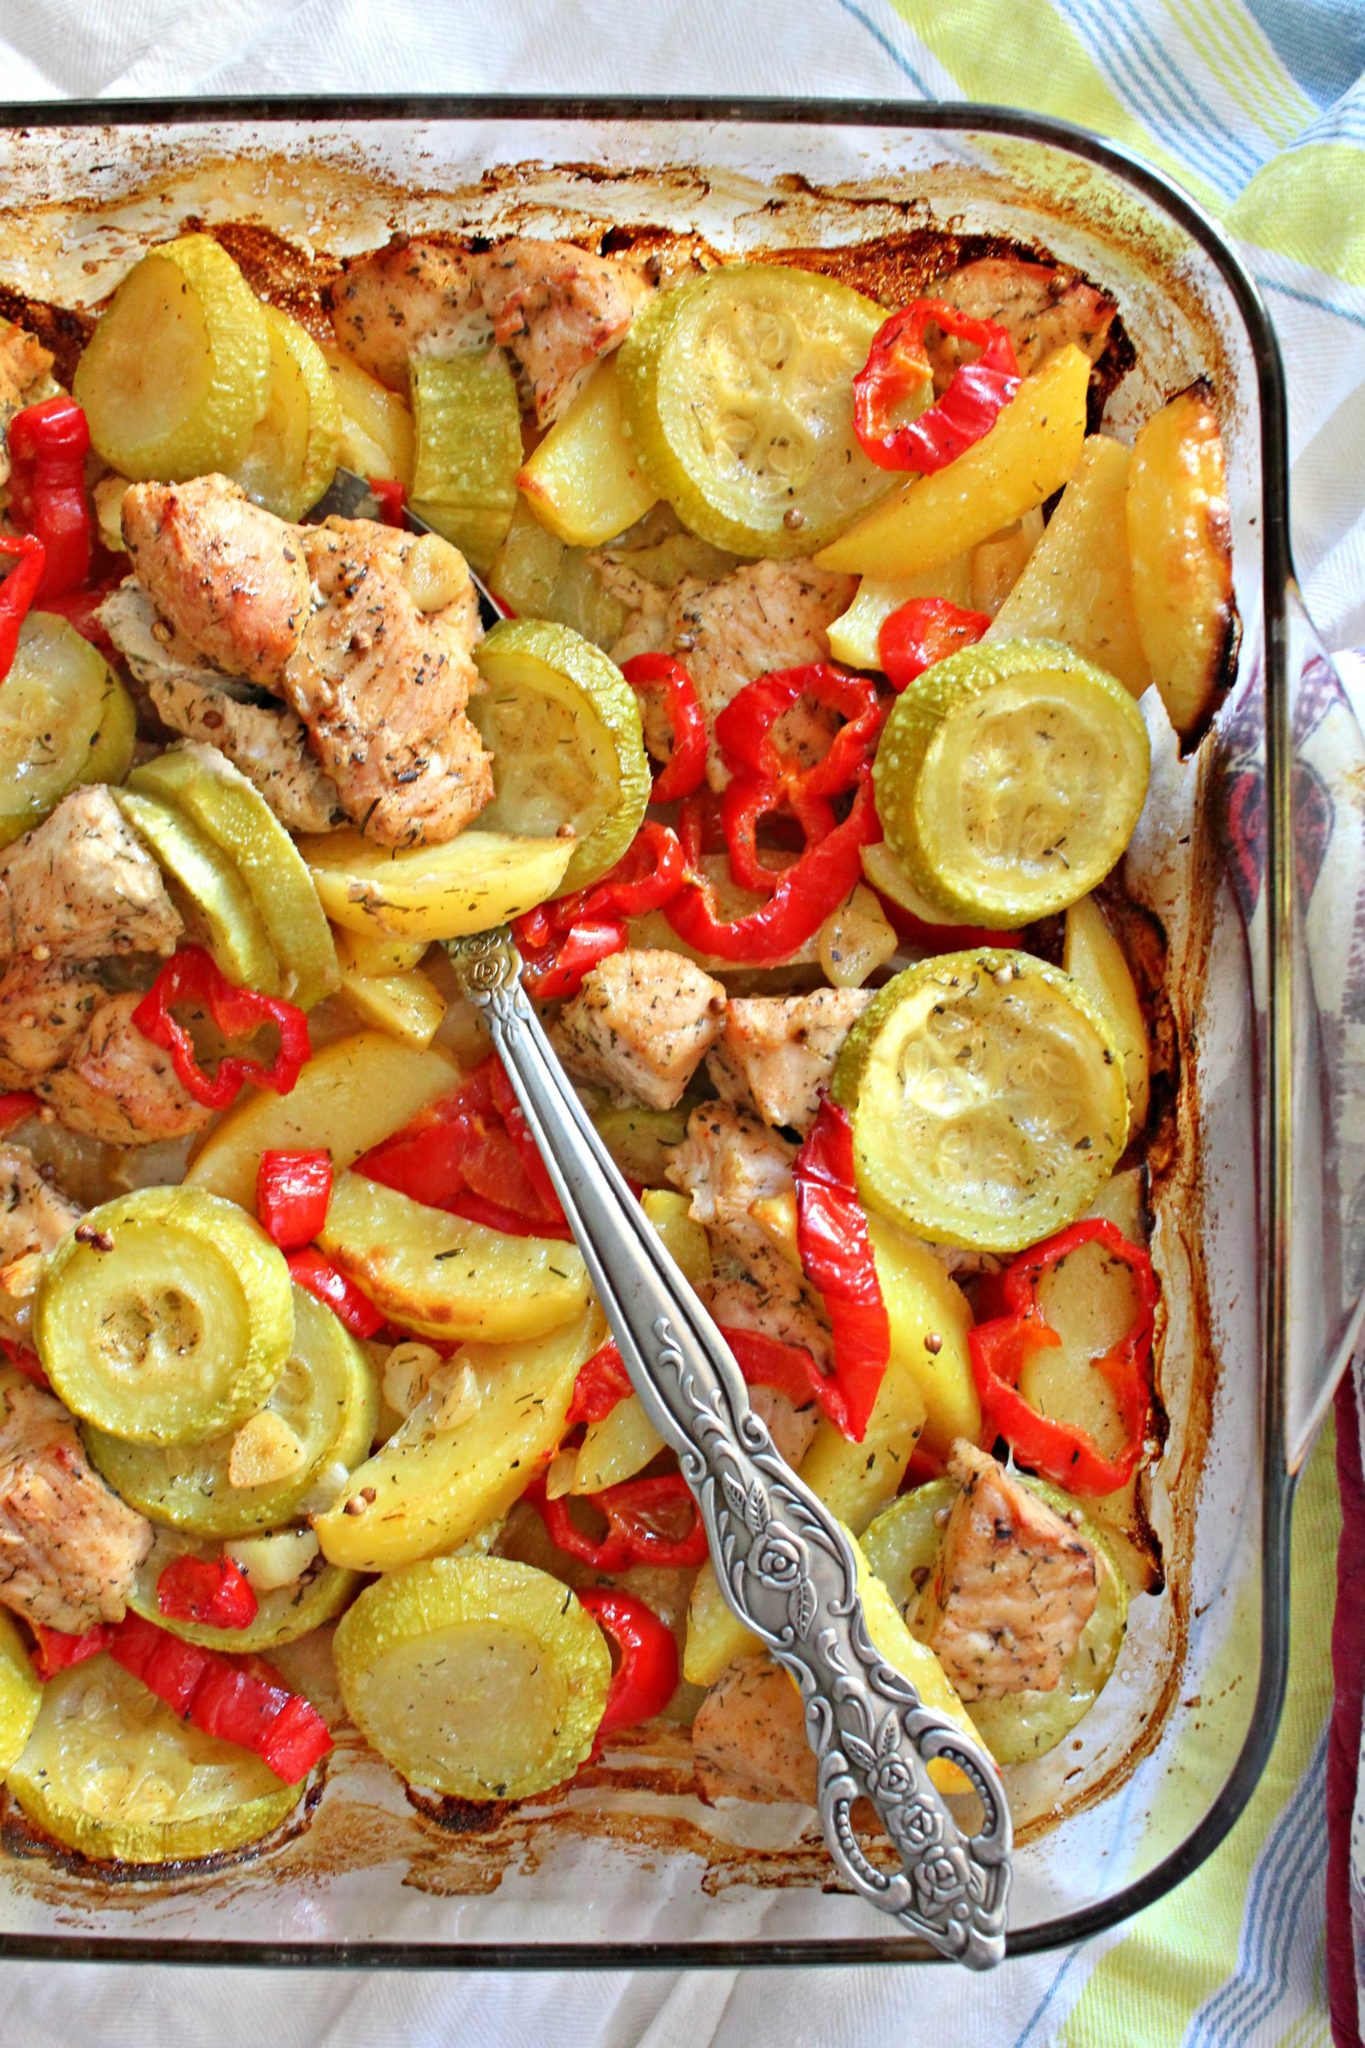 Baking dish with sweet and picy turkey breast and vegetables, made with brown sugar, paprika lemon juice and herbs